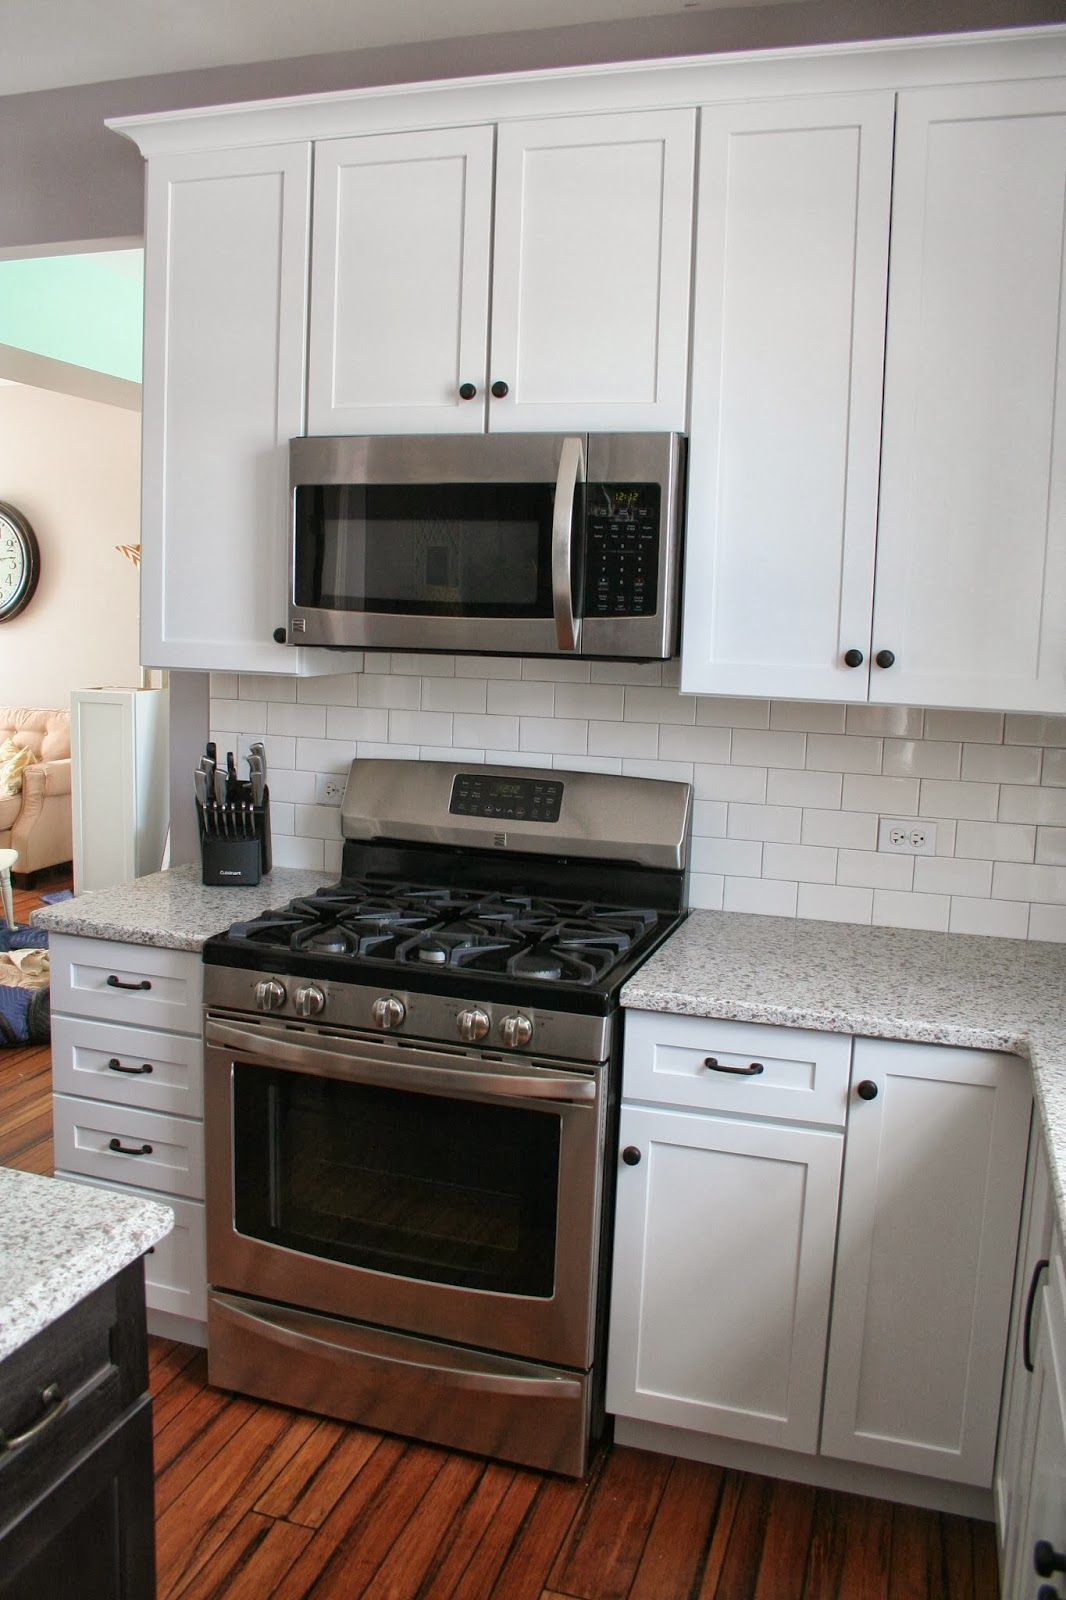 Kitchen Cabinet Knobs Atlanta Ga White Shaker Cabinets With Restoration Hardware Dakota Pulls And